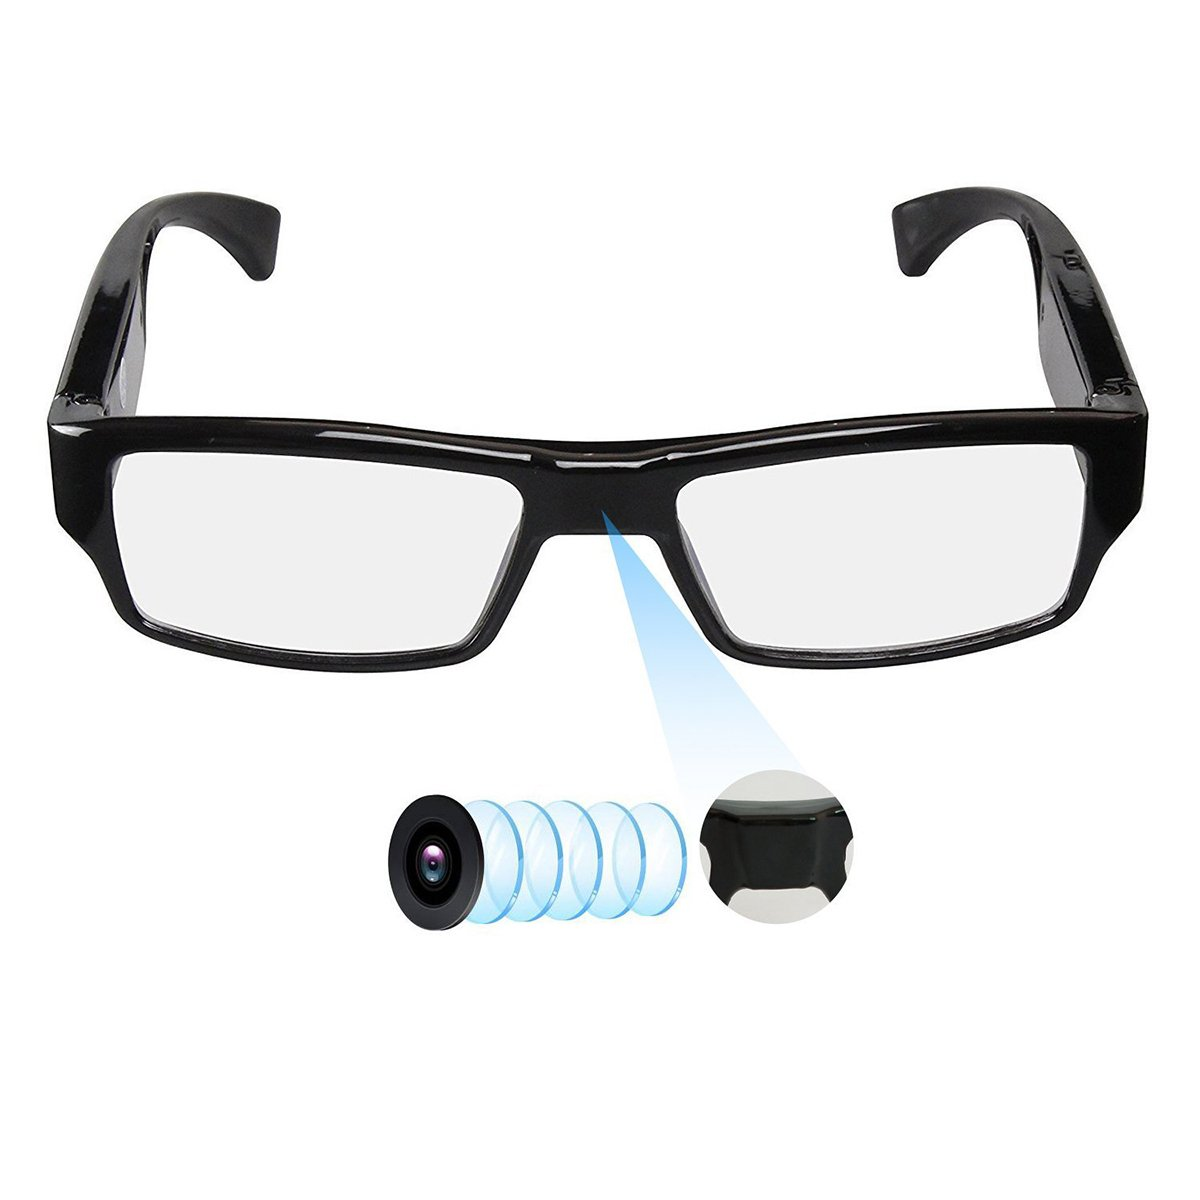 Spy Camera Glasses with Video Support Up to 32GB TF Card 1080P Video Camera Glasses Portable Video Recorder by Hereta